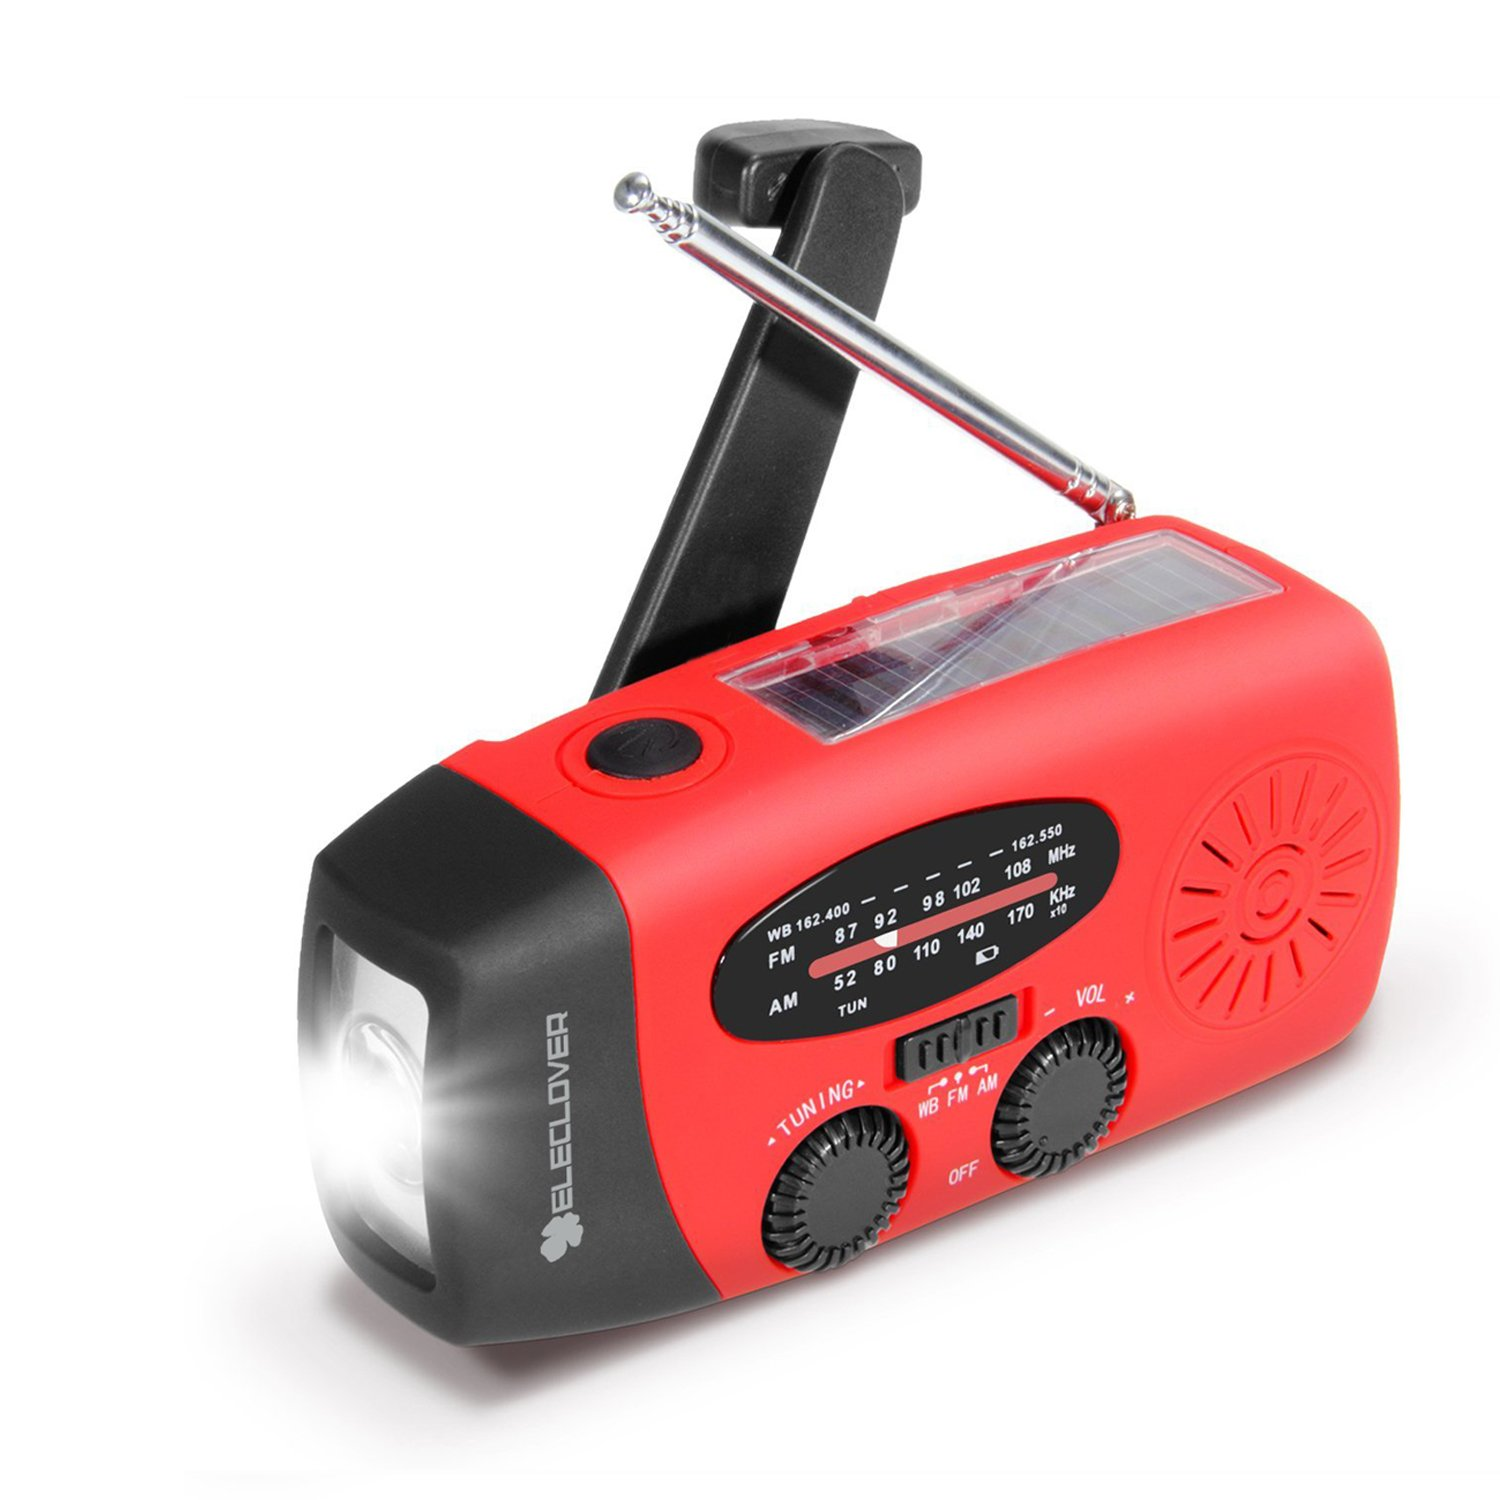 [Upgraded Version] ELECLOVER Portable Dynamo Emergency Solar Crank AM/FM/NOAA(WB) Weather Radio with LED Flashlight, Cell Phone Portable Charger, Red by ELECLOVER